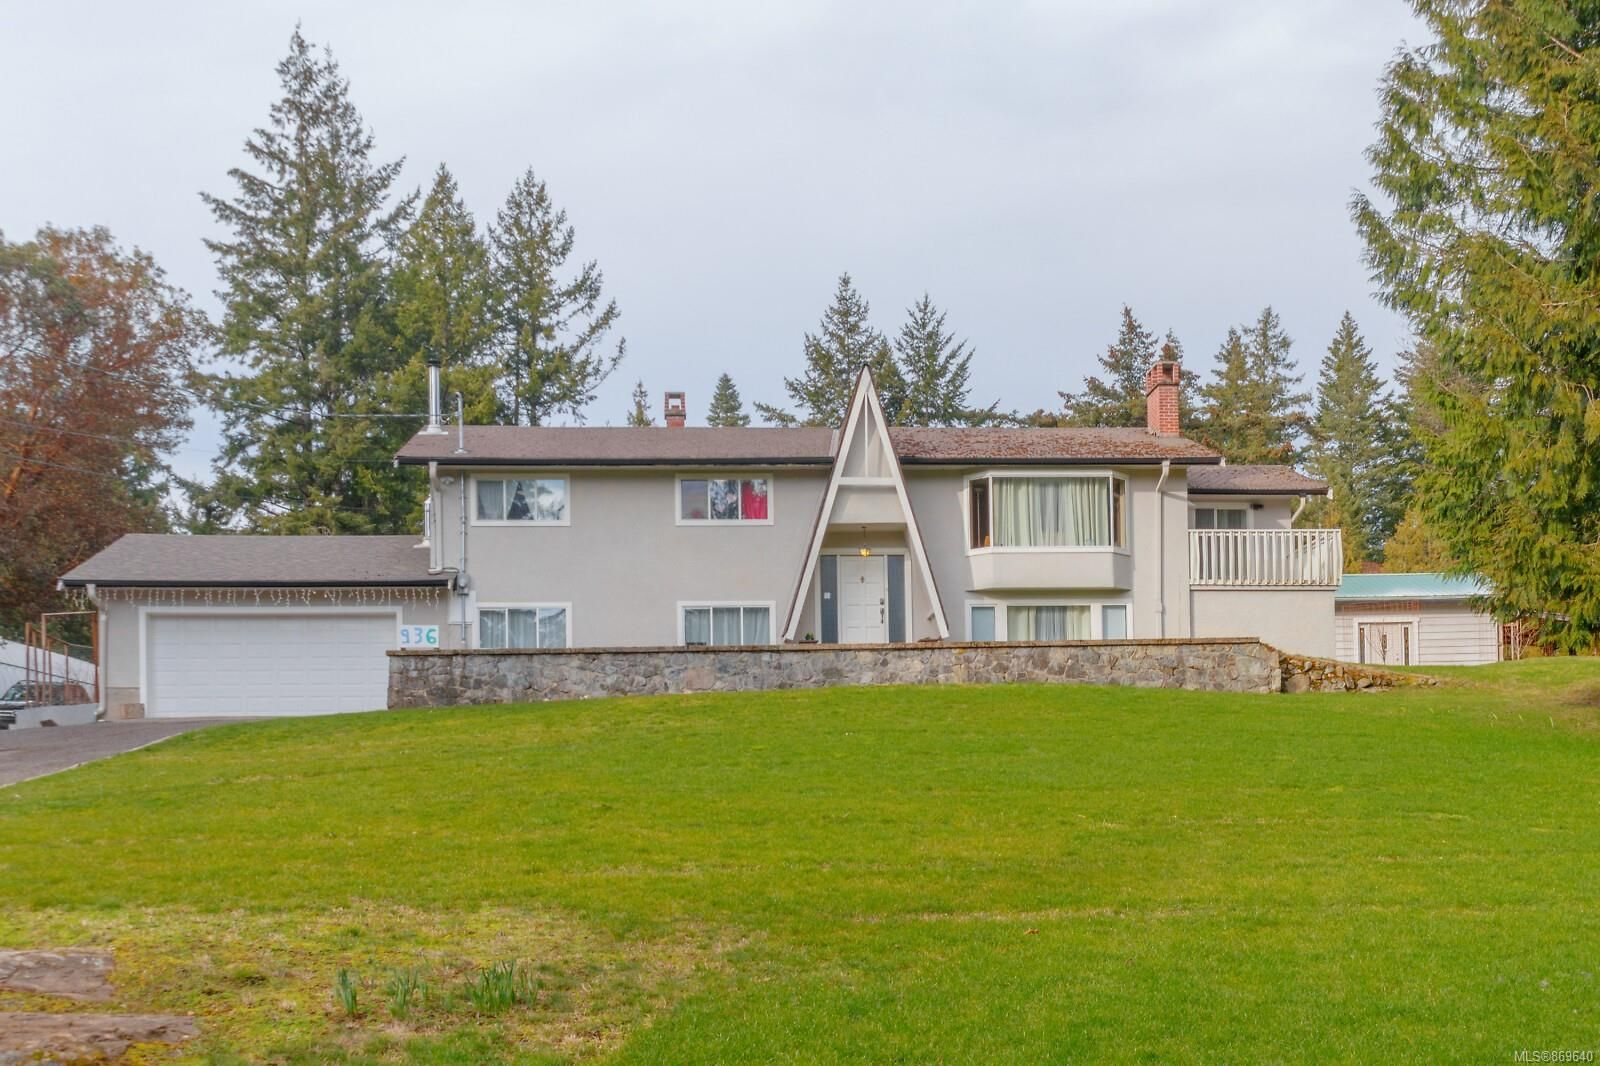 Main Photo: 936 Klahanie Dr in : La Happy Valley House for sale (Langford)  : MLS®# 869640